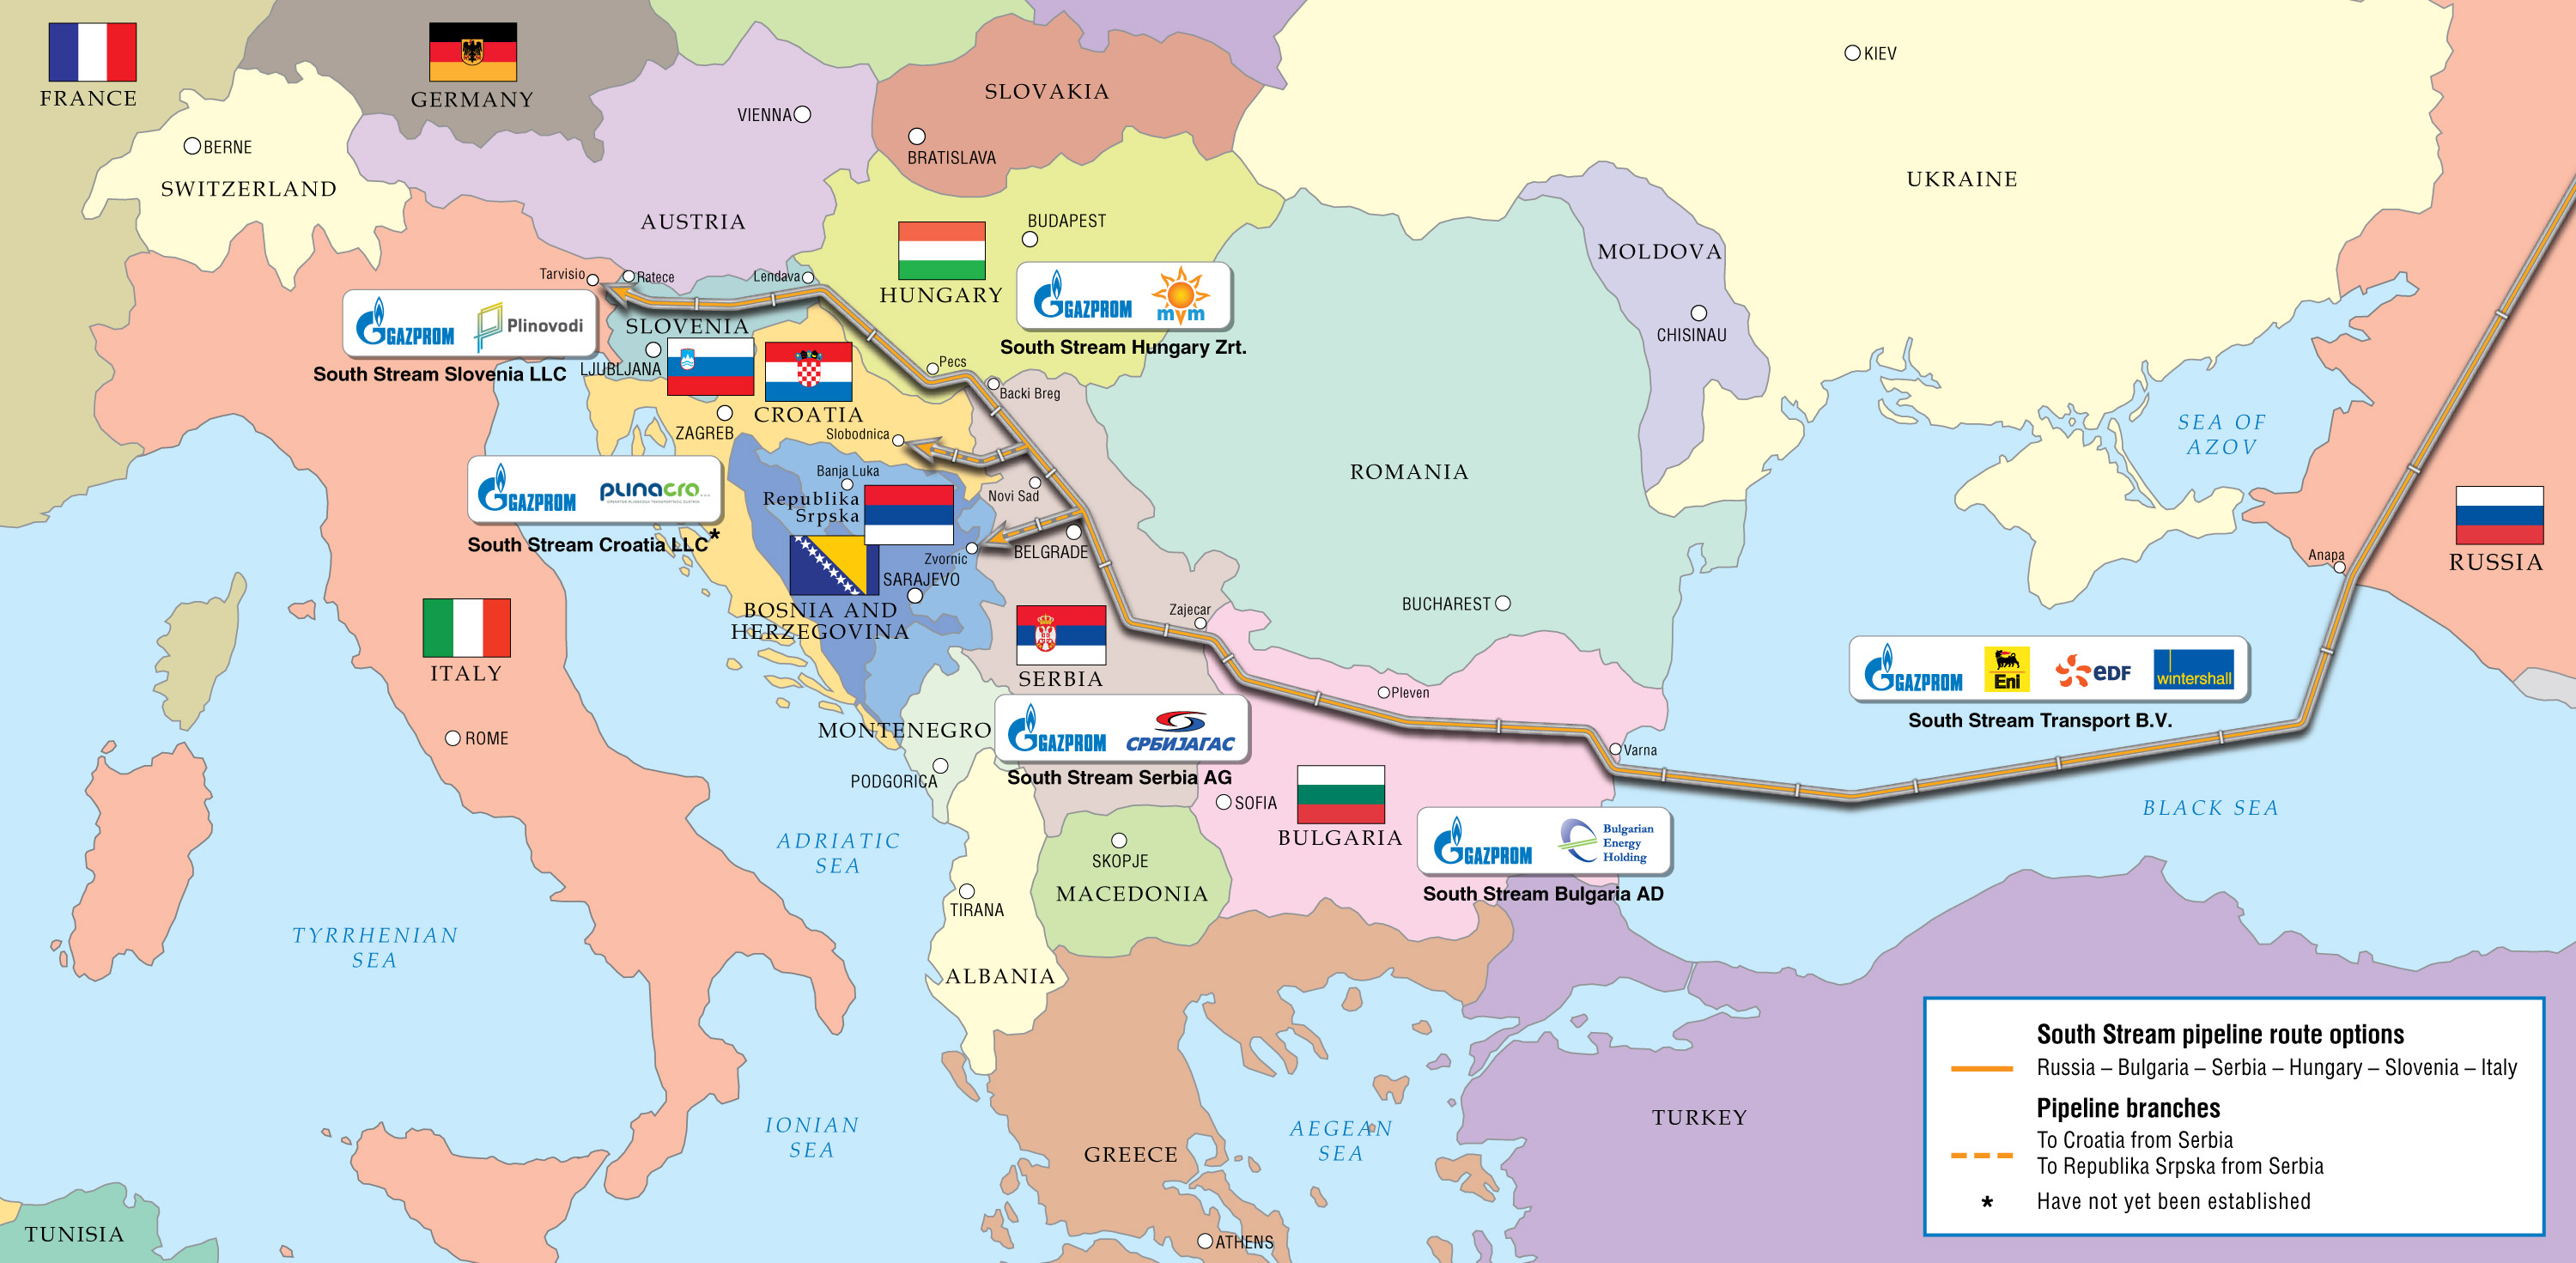 South Stream options before Austria entered the picture.